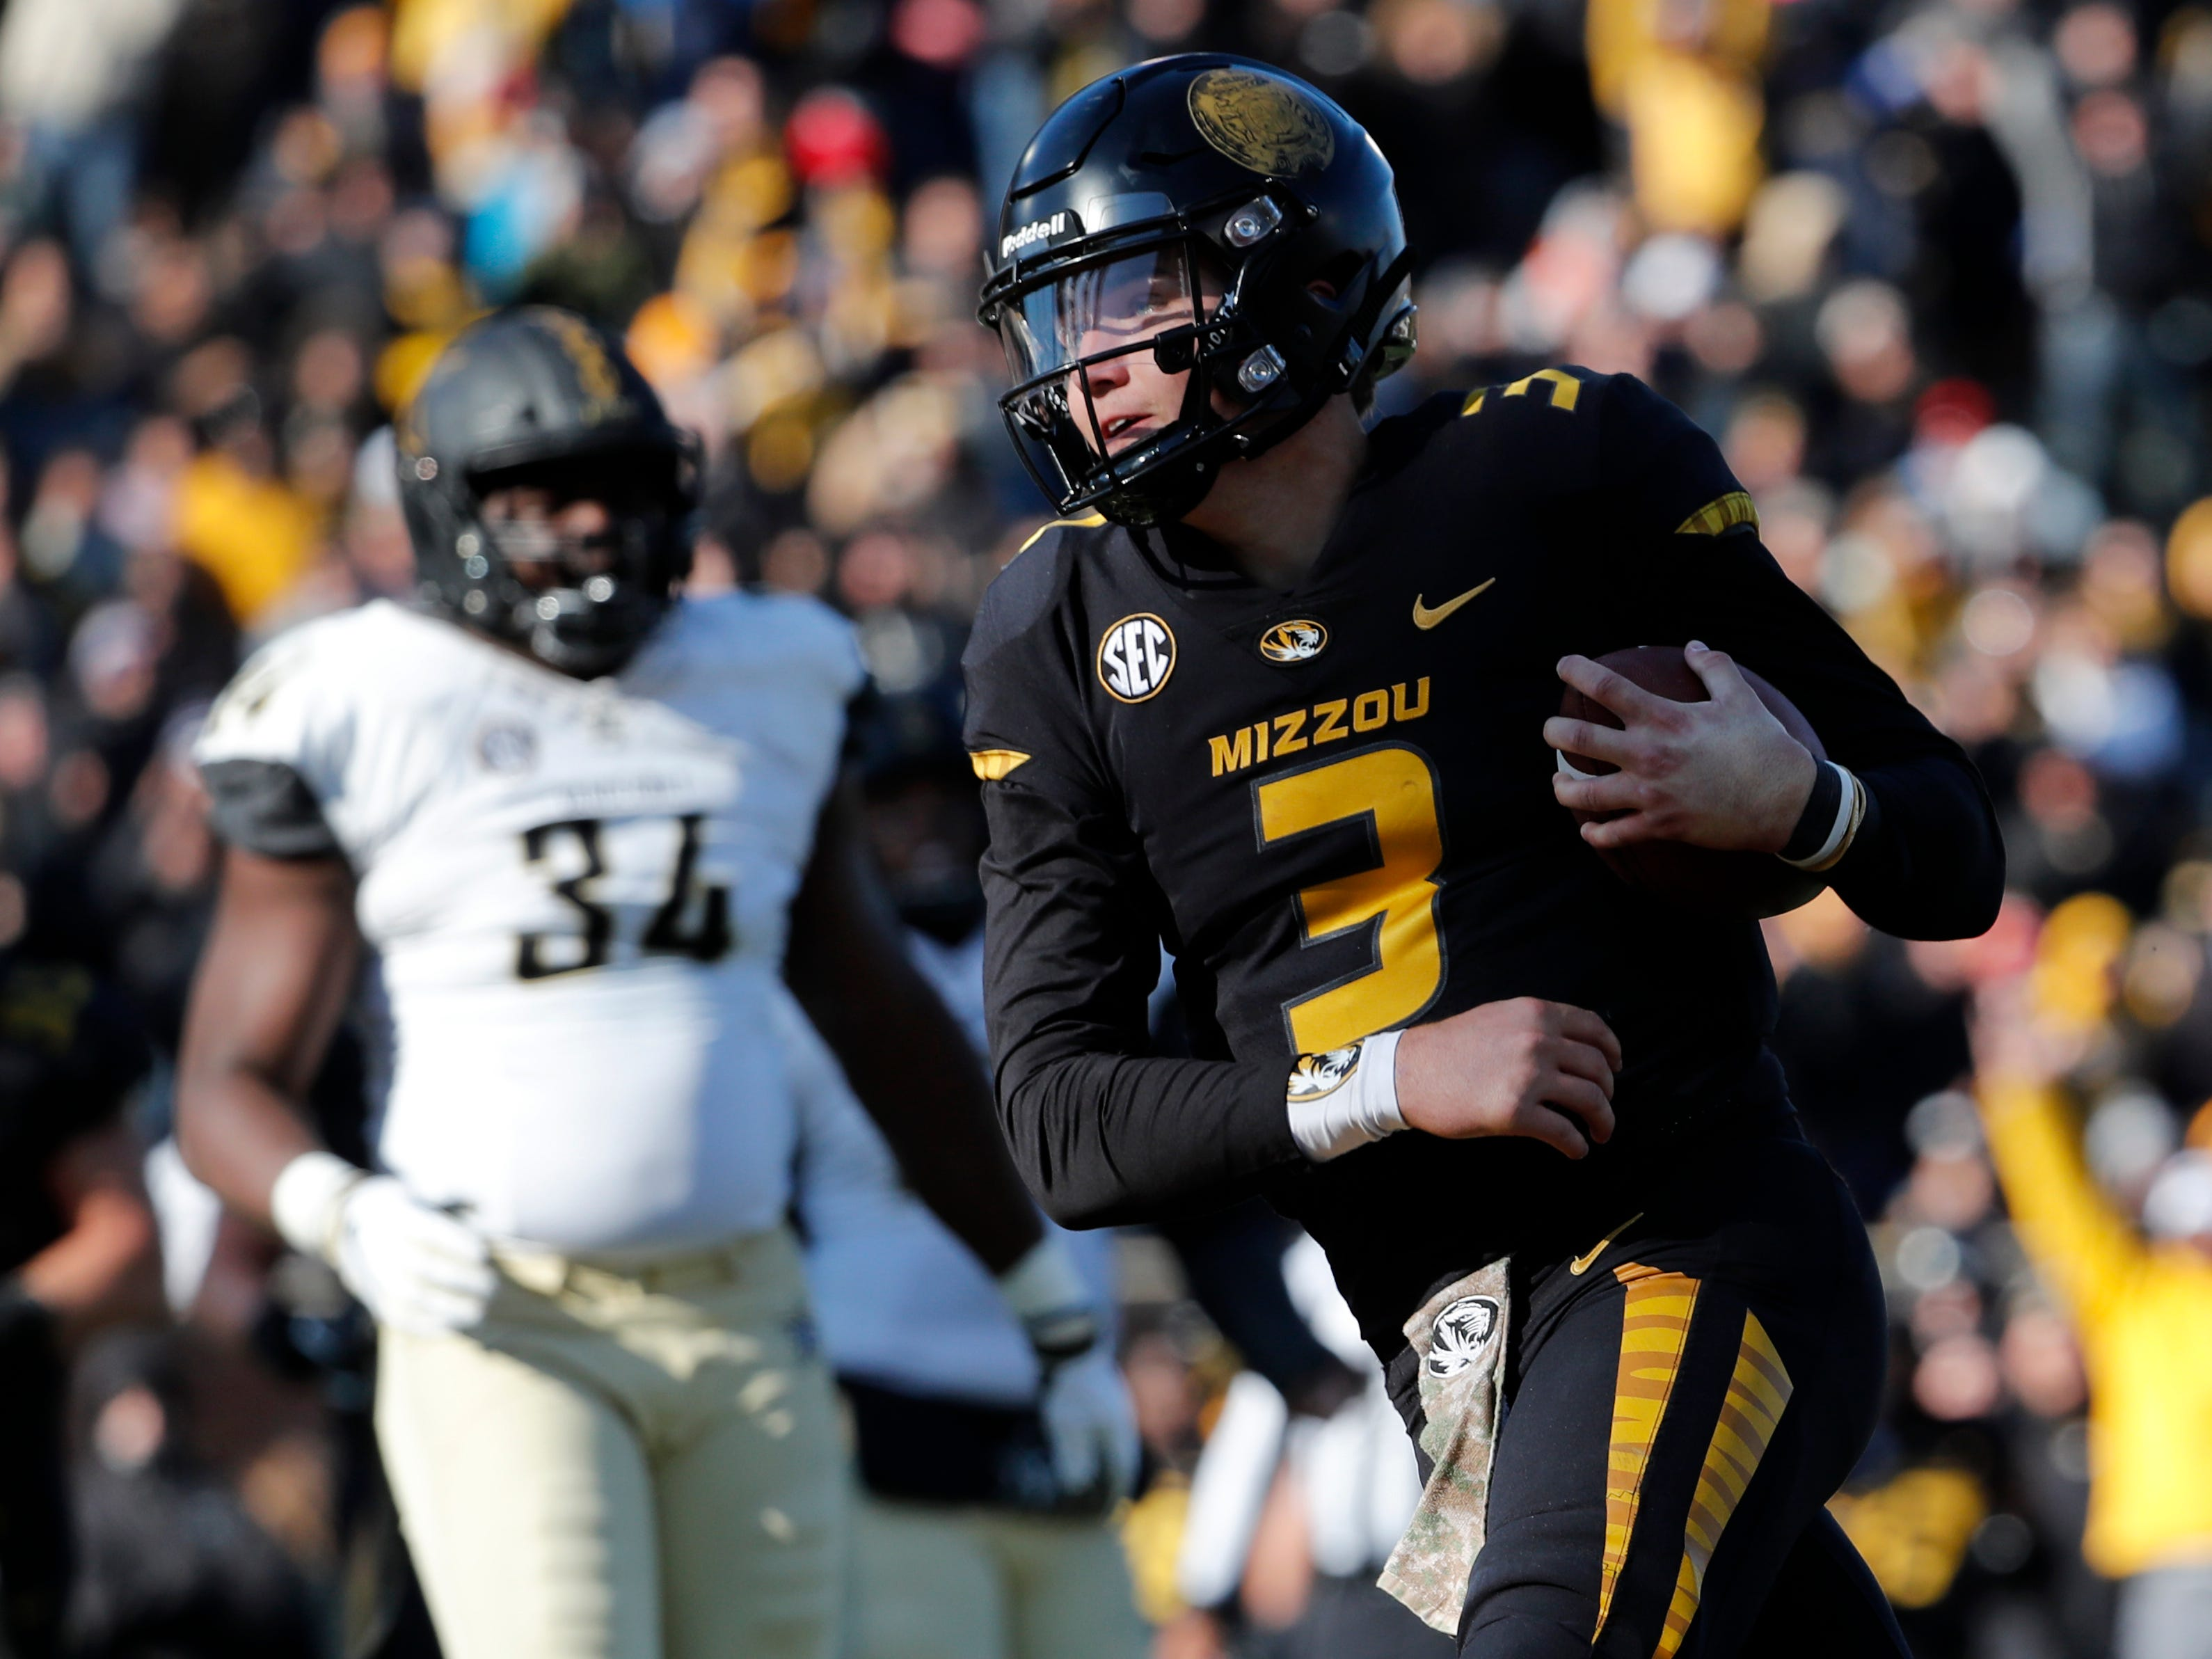 Missouri quarterback Drew Lock scores on a 3-yard touchdown run during the second half of an NCAA college football game against Vanderbilt Saturday, Nov. 10, 2018, in Columbia, Mo. Missouri won 33-28.